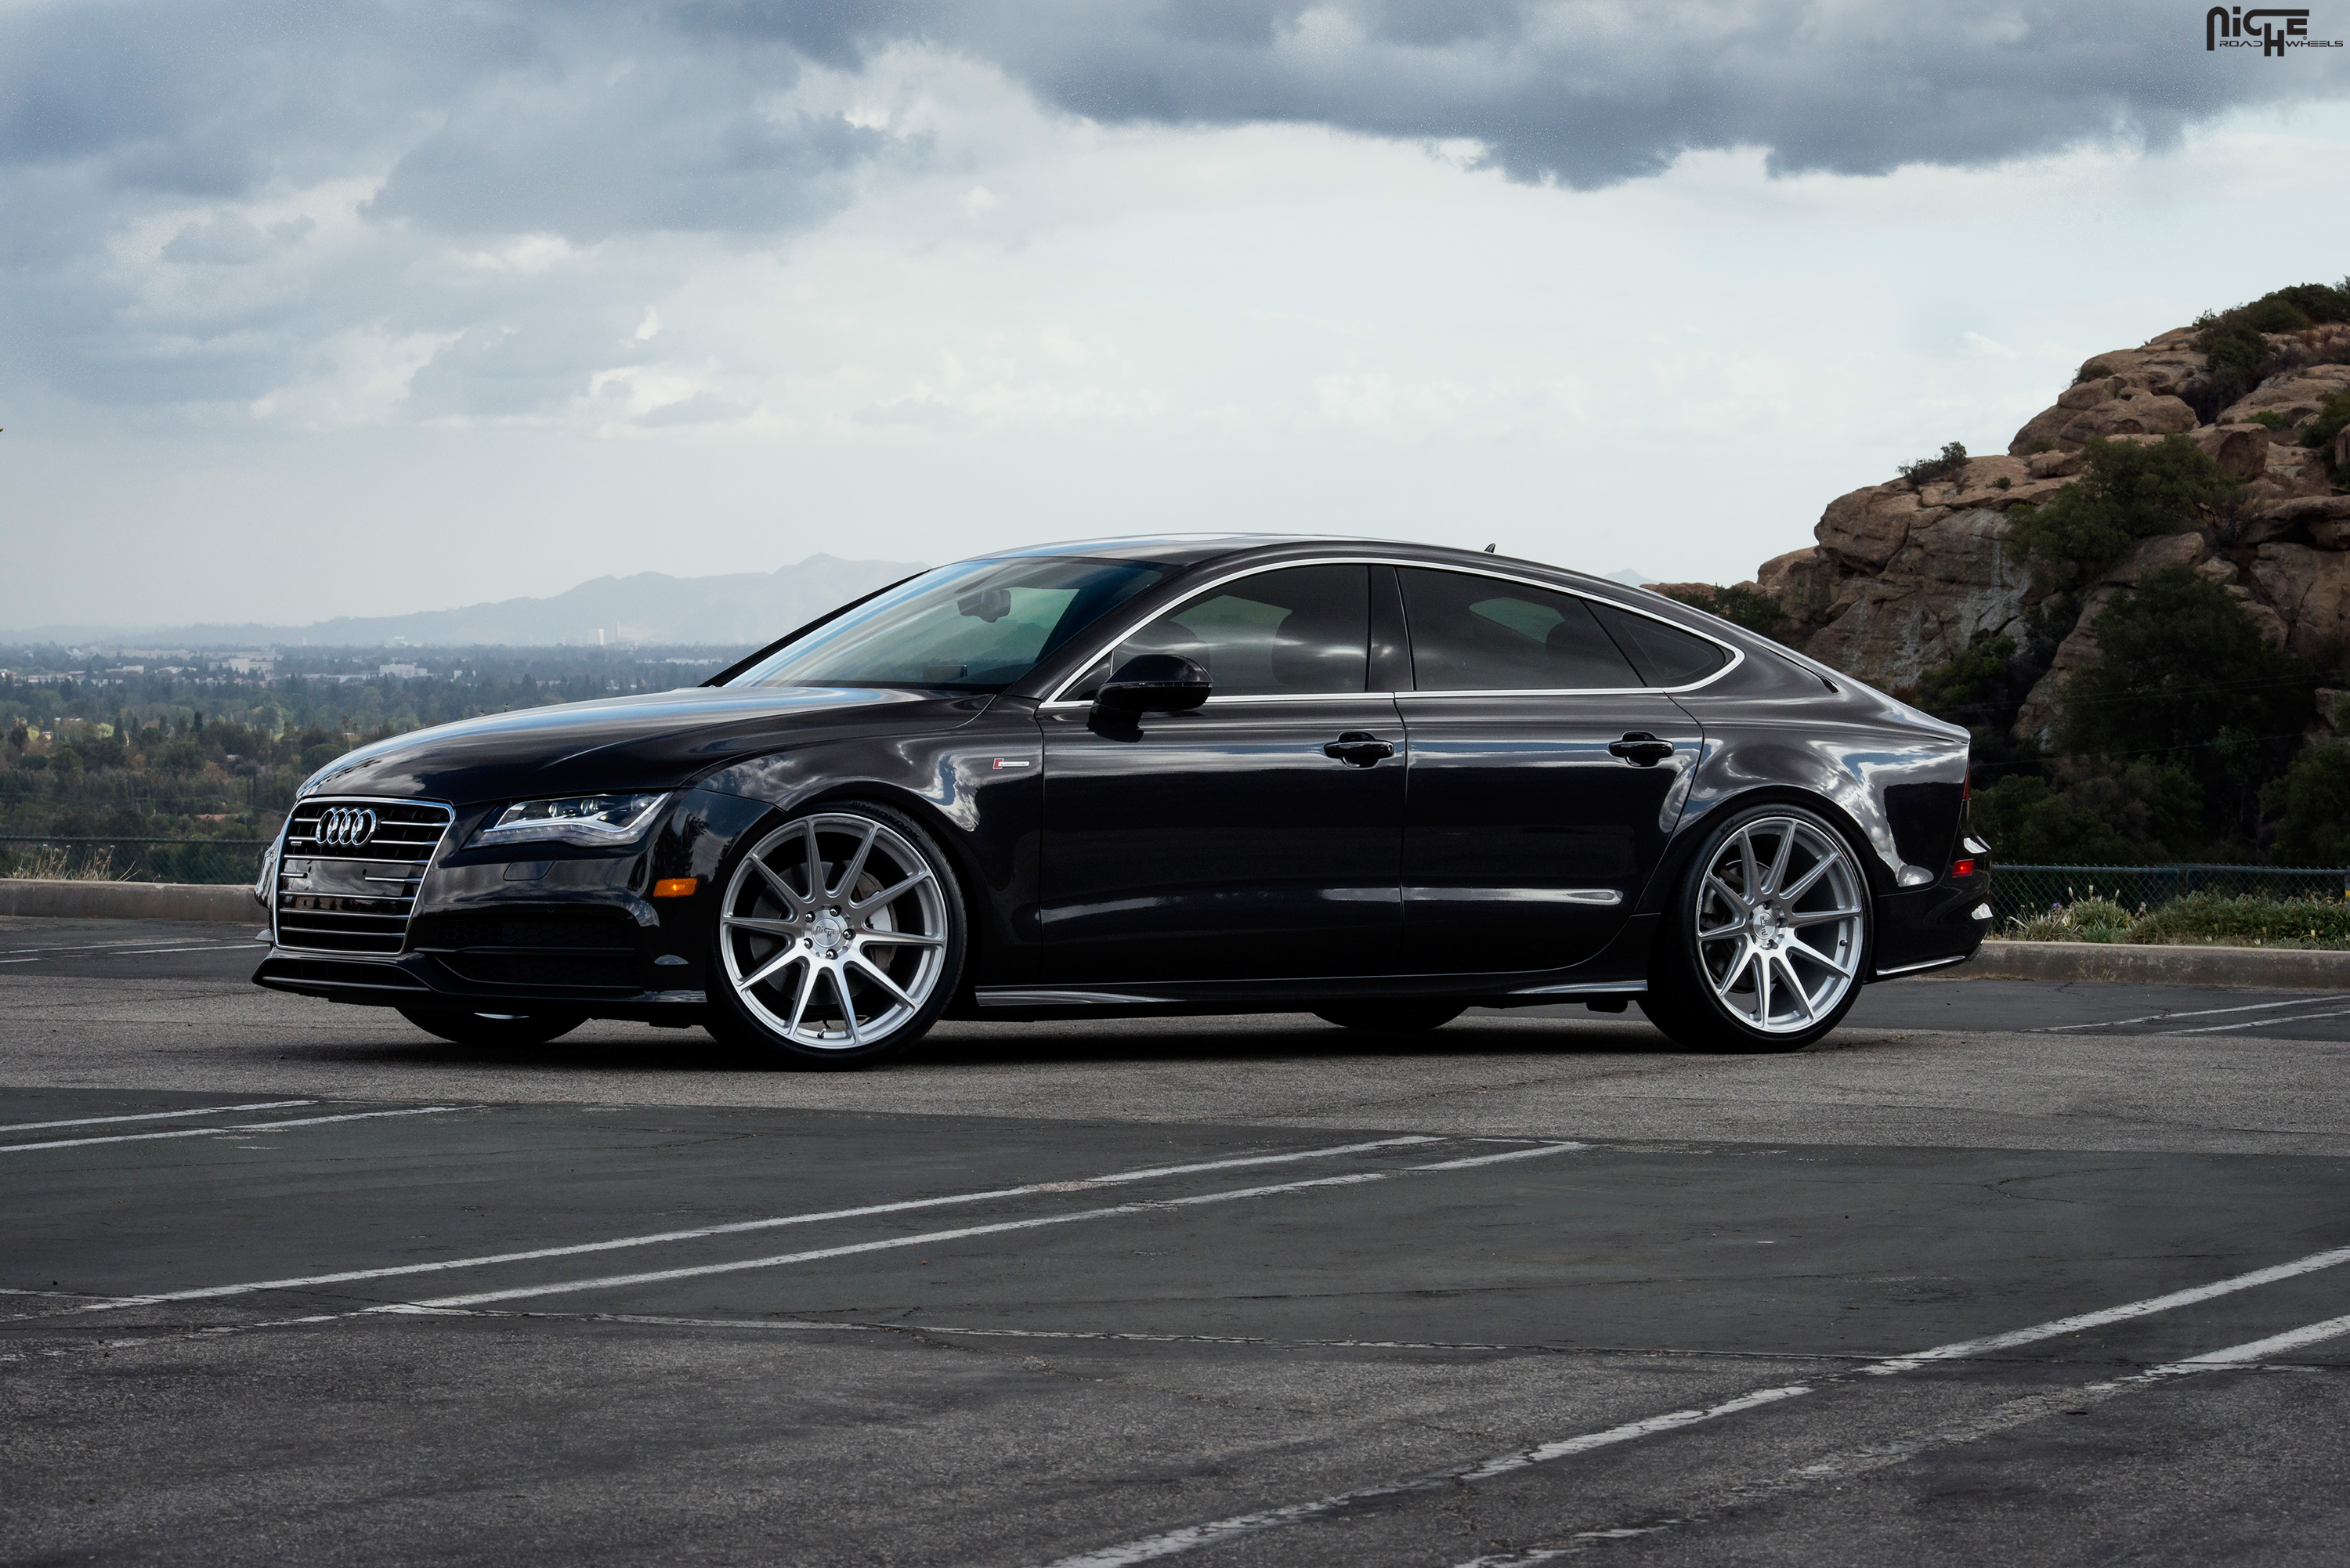 Audi S7 Essen M146 Gallery Mht Wheels Inc